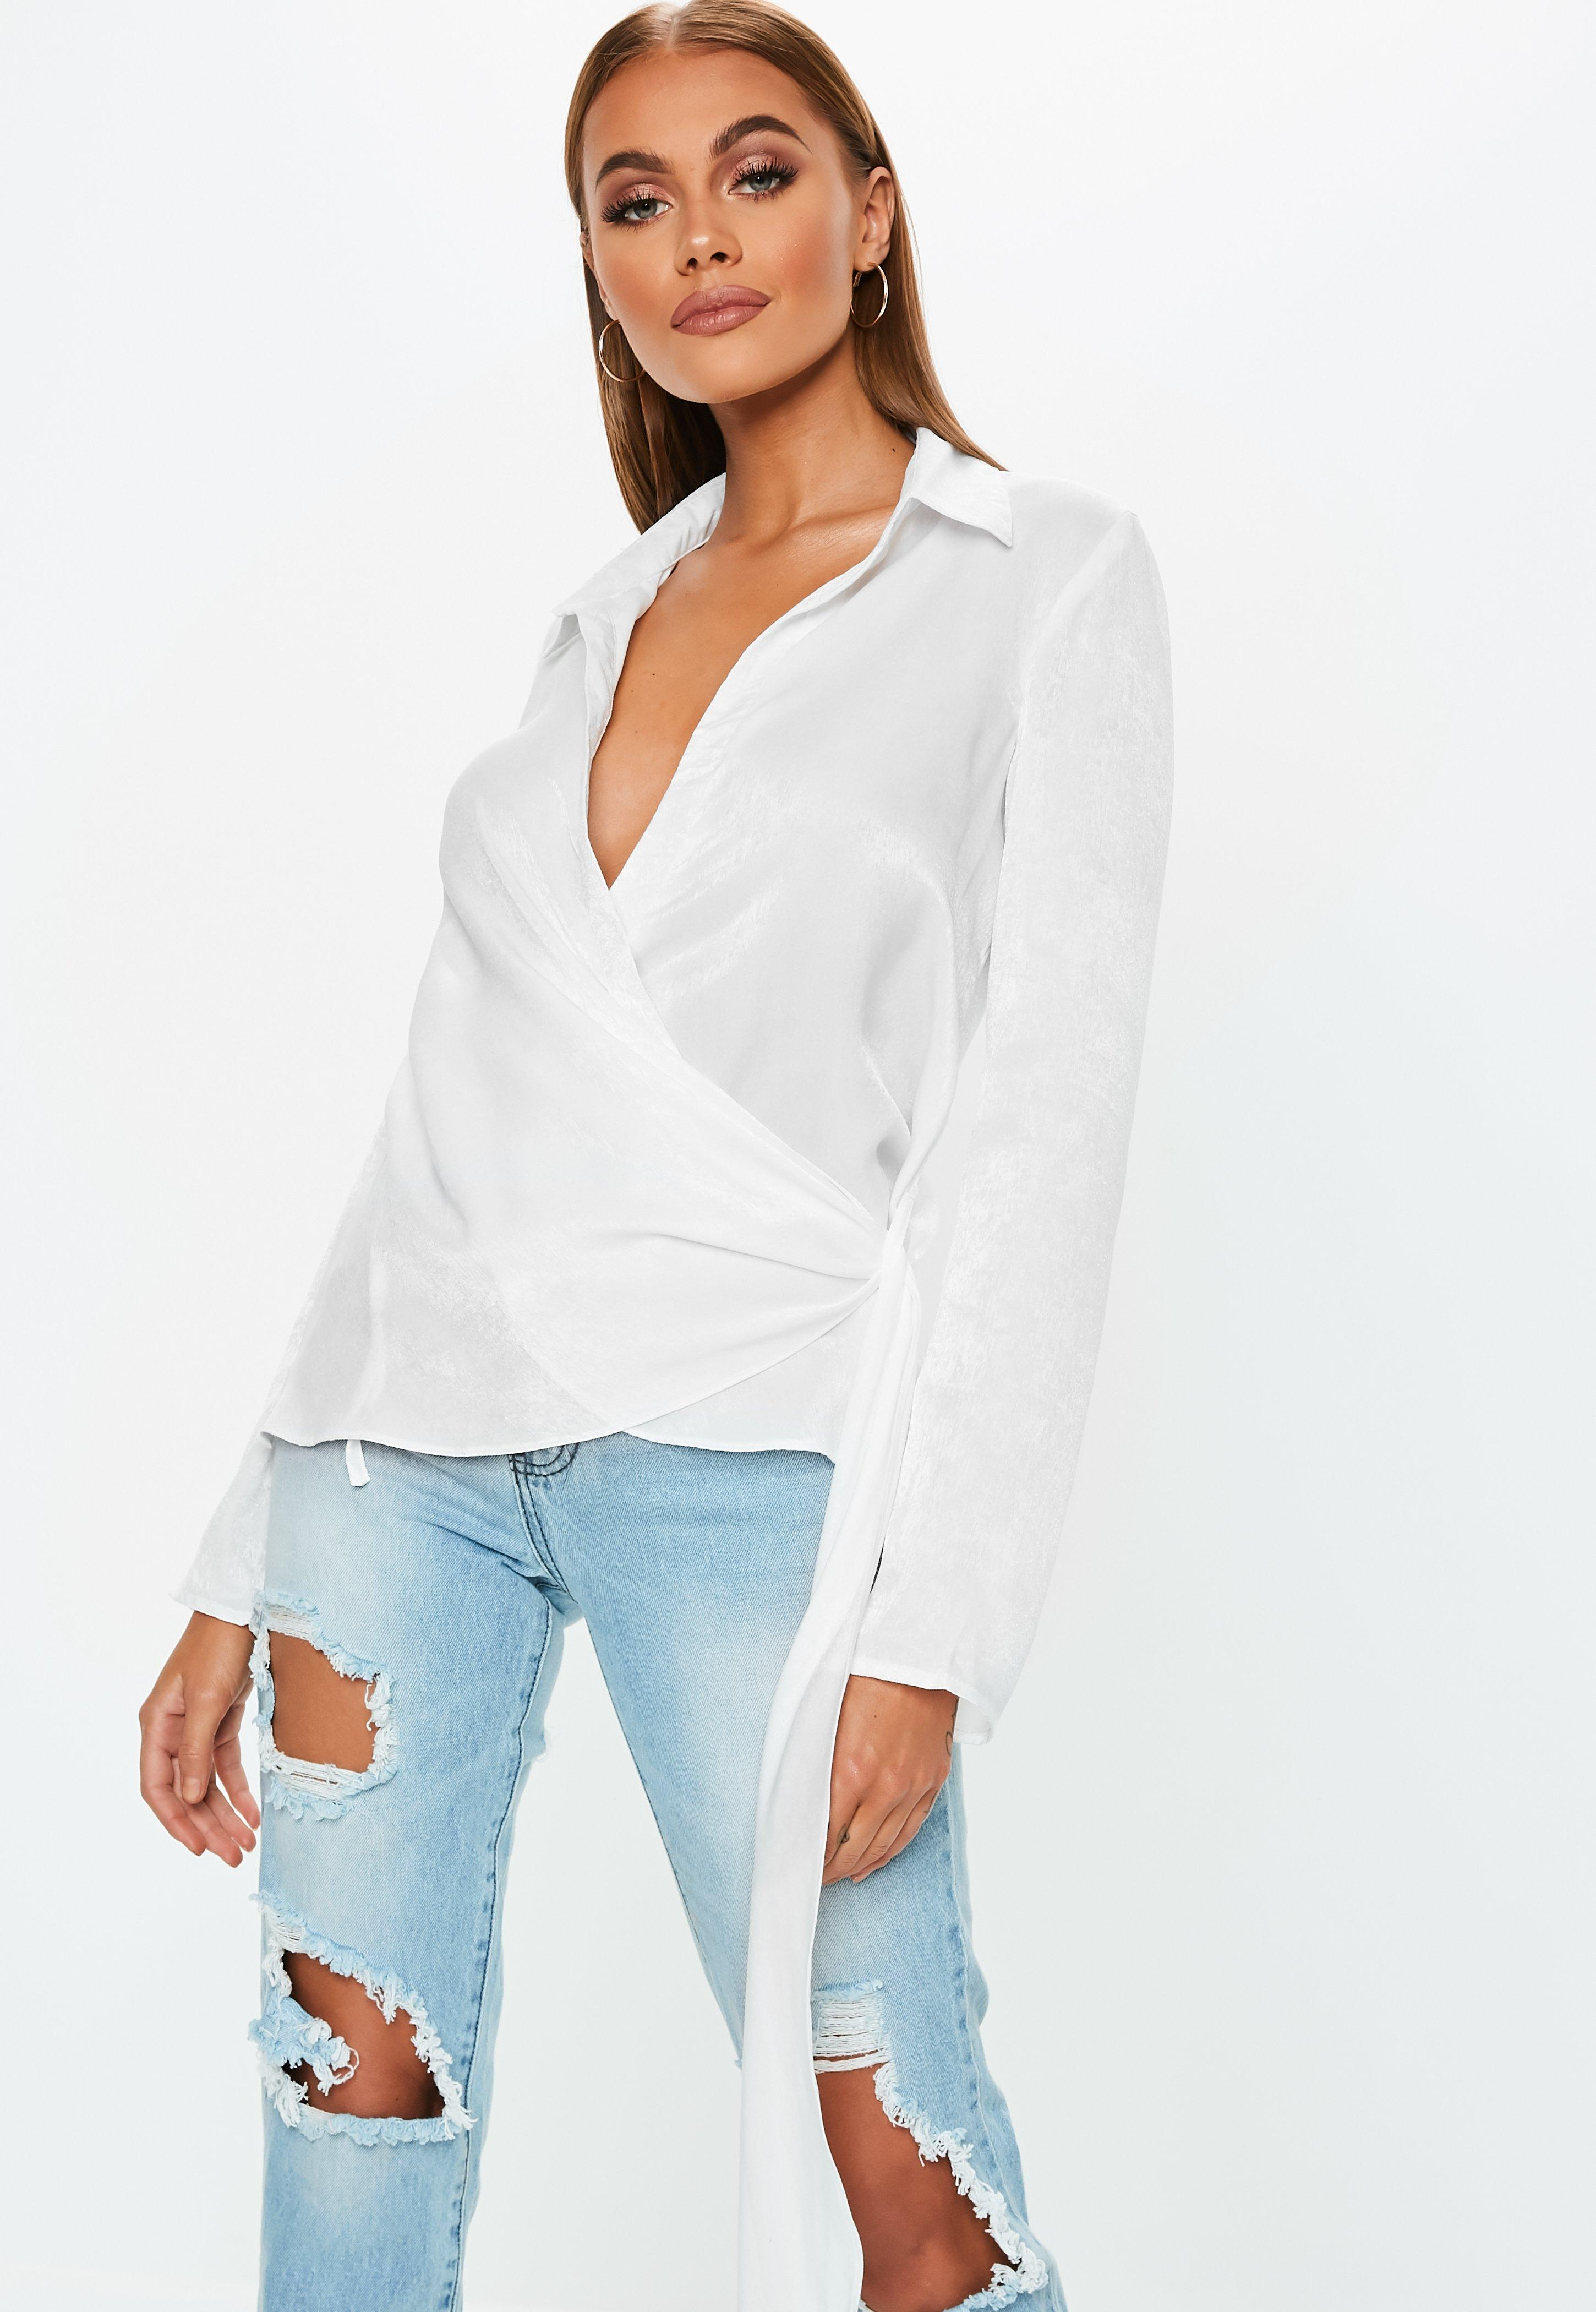 Going Out Tops | Party & Evening Tops - Missguided